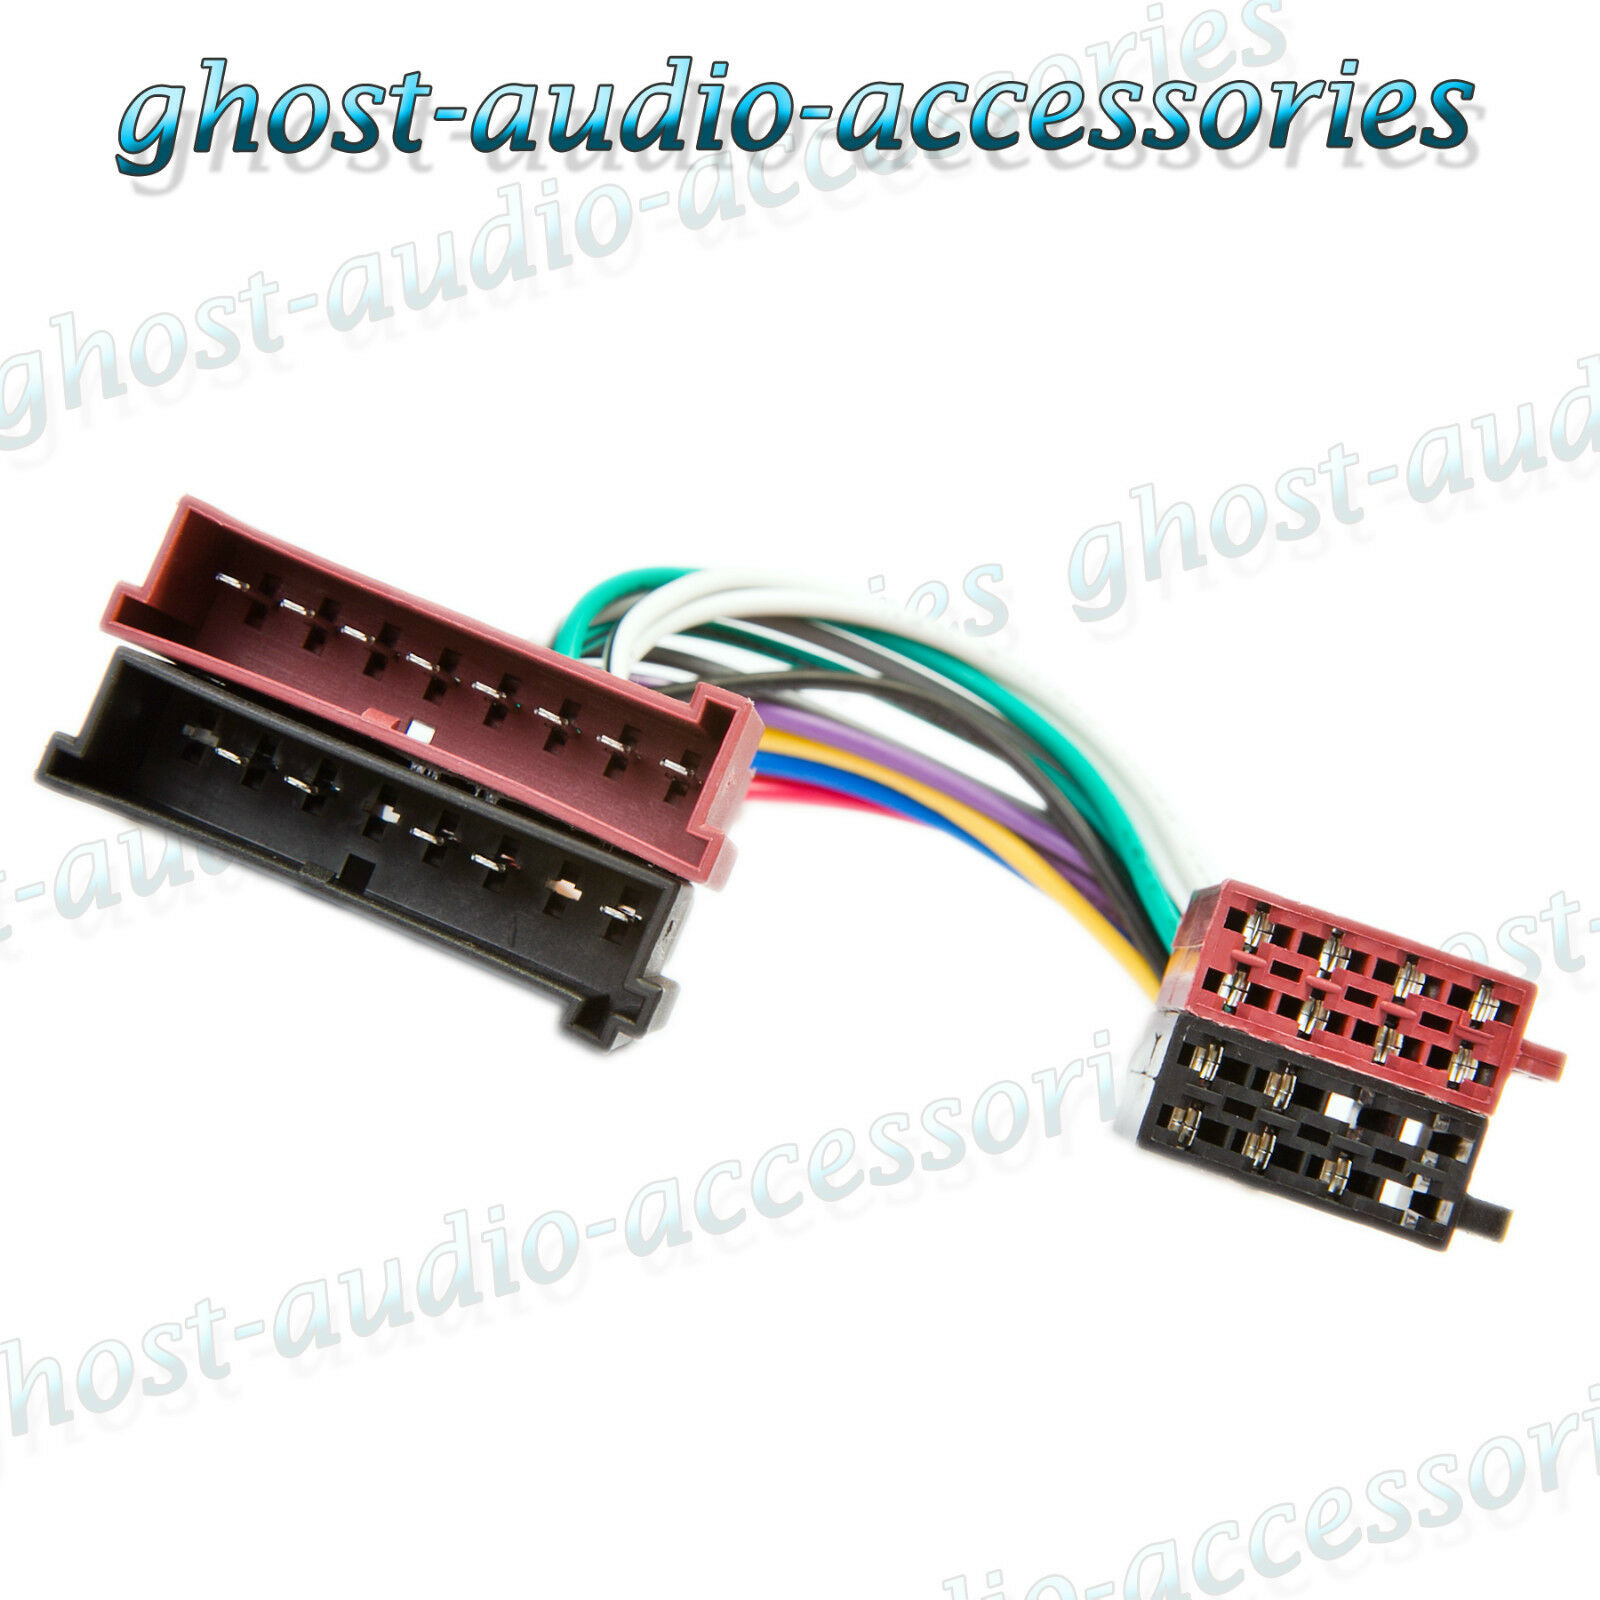 ford ka iso car radio stereo harness adapter wiring connector ebay rh ebay com 98 Ford Ranger Antenna Wiring Ford Stereo Adapter